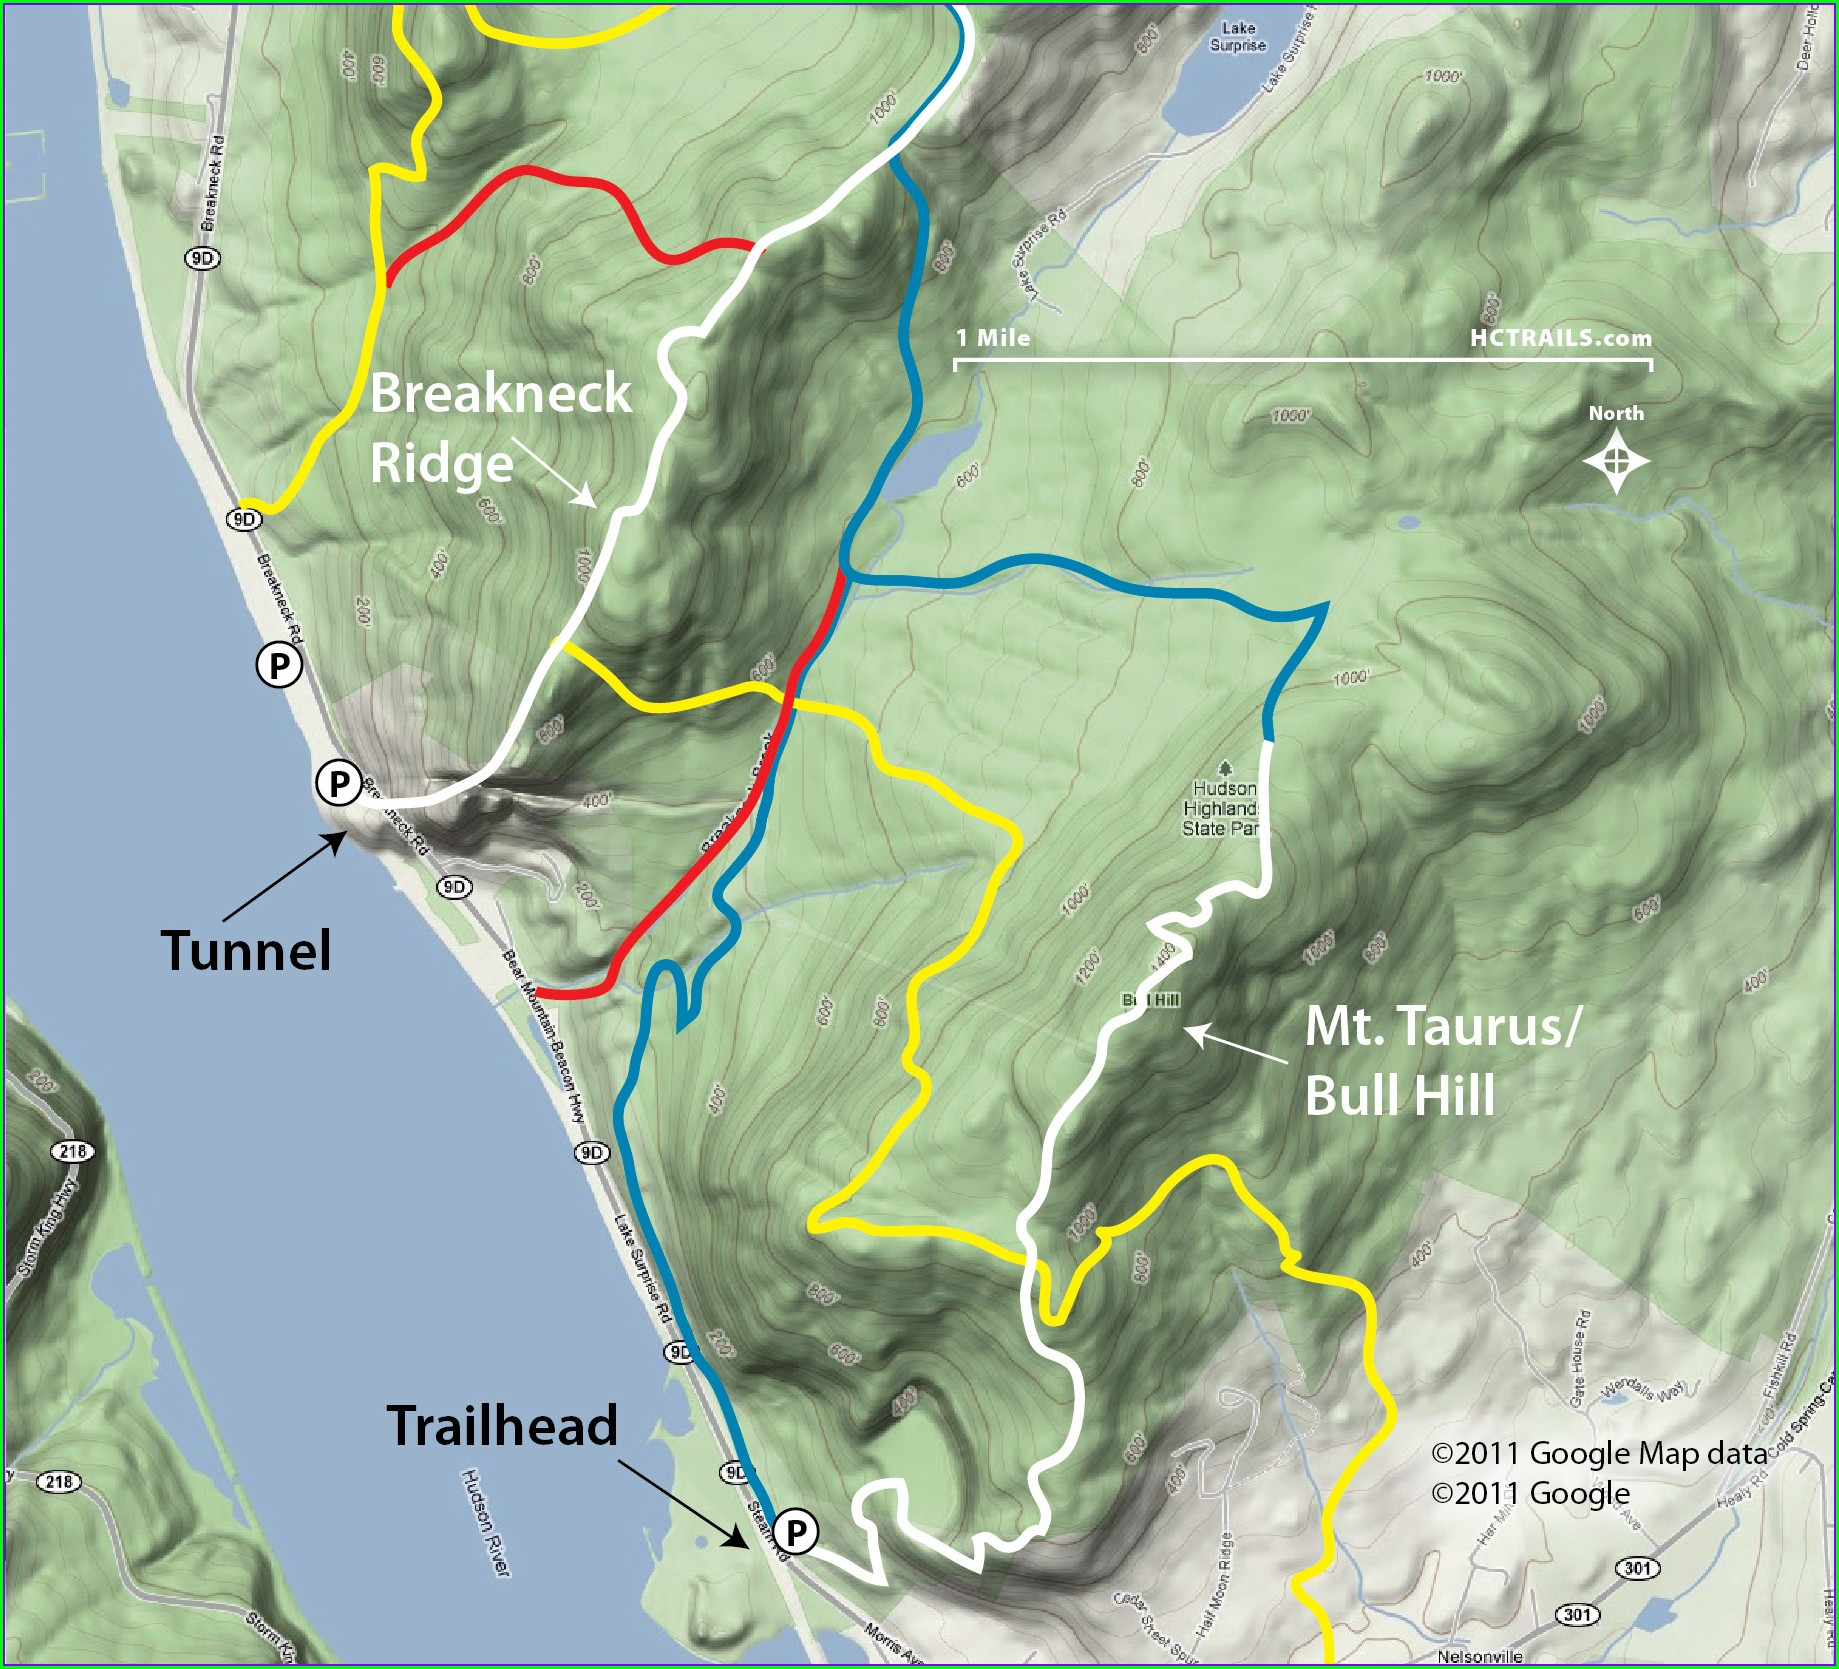 Breakneck Ridge Trail Map Pdf